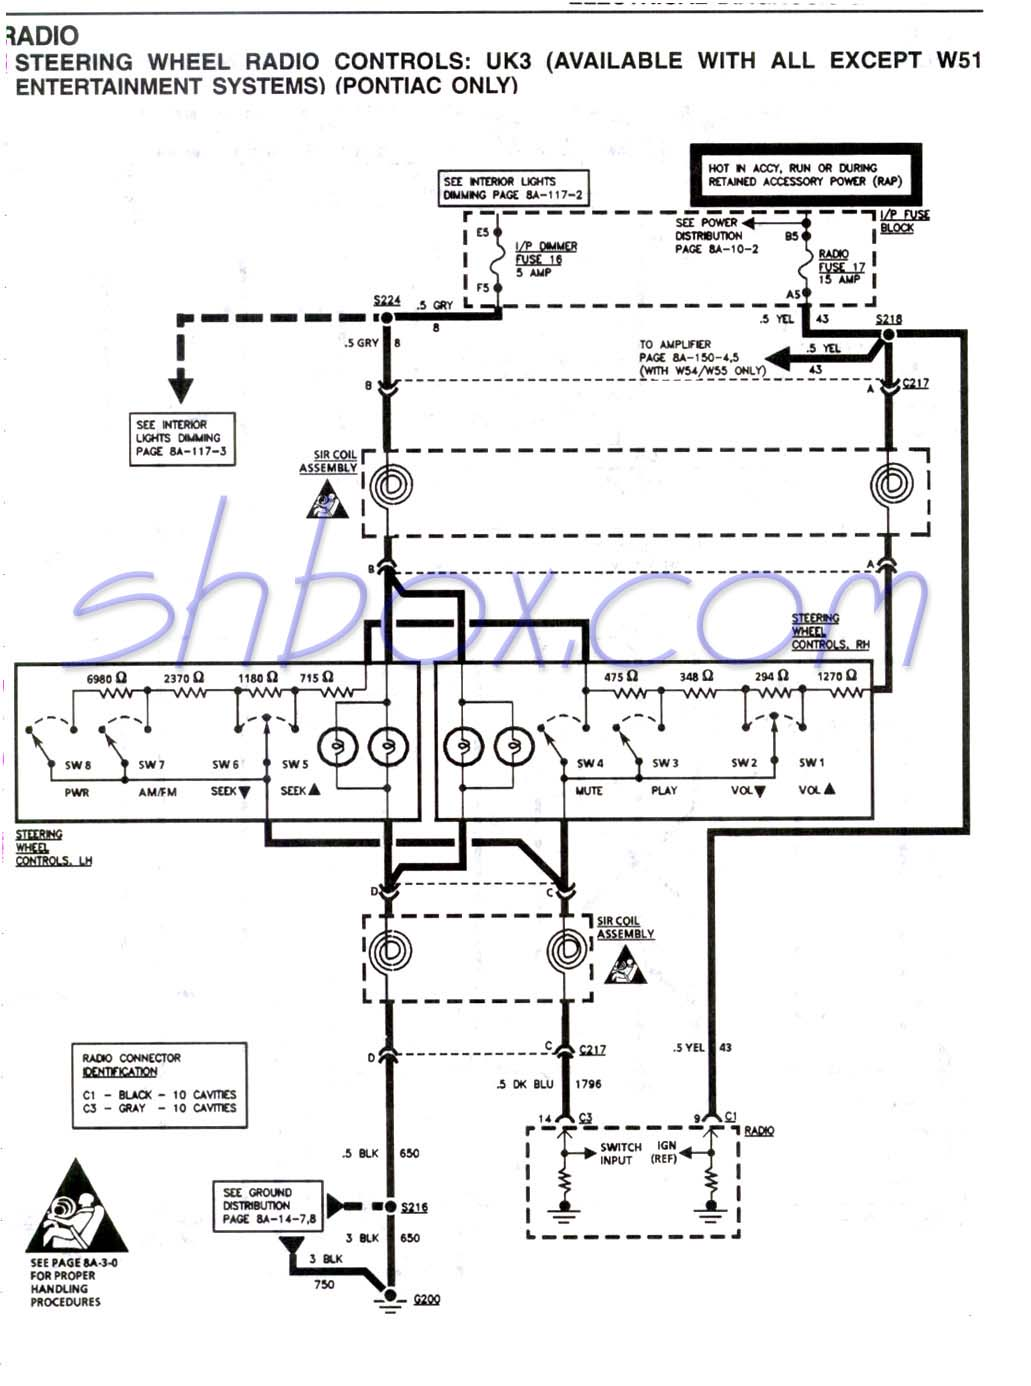 Steering Wheel Radio Controls Schematic (Firebird)